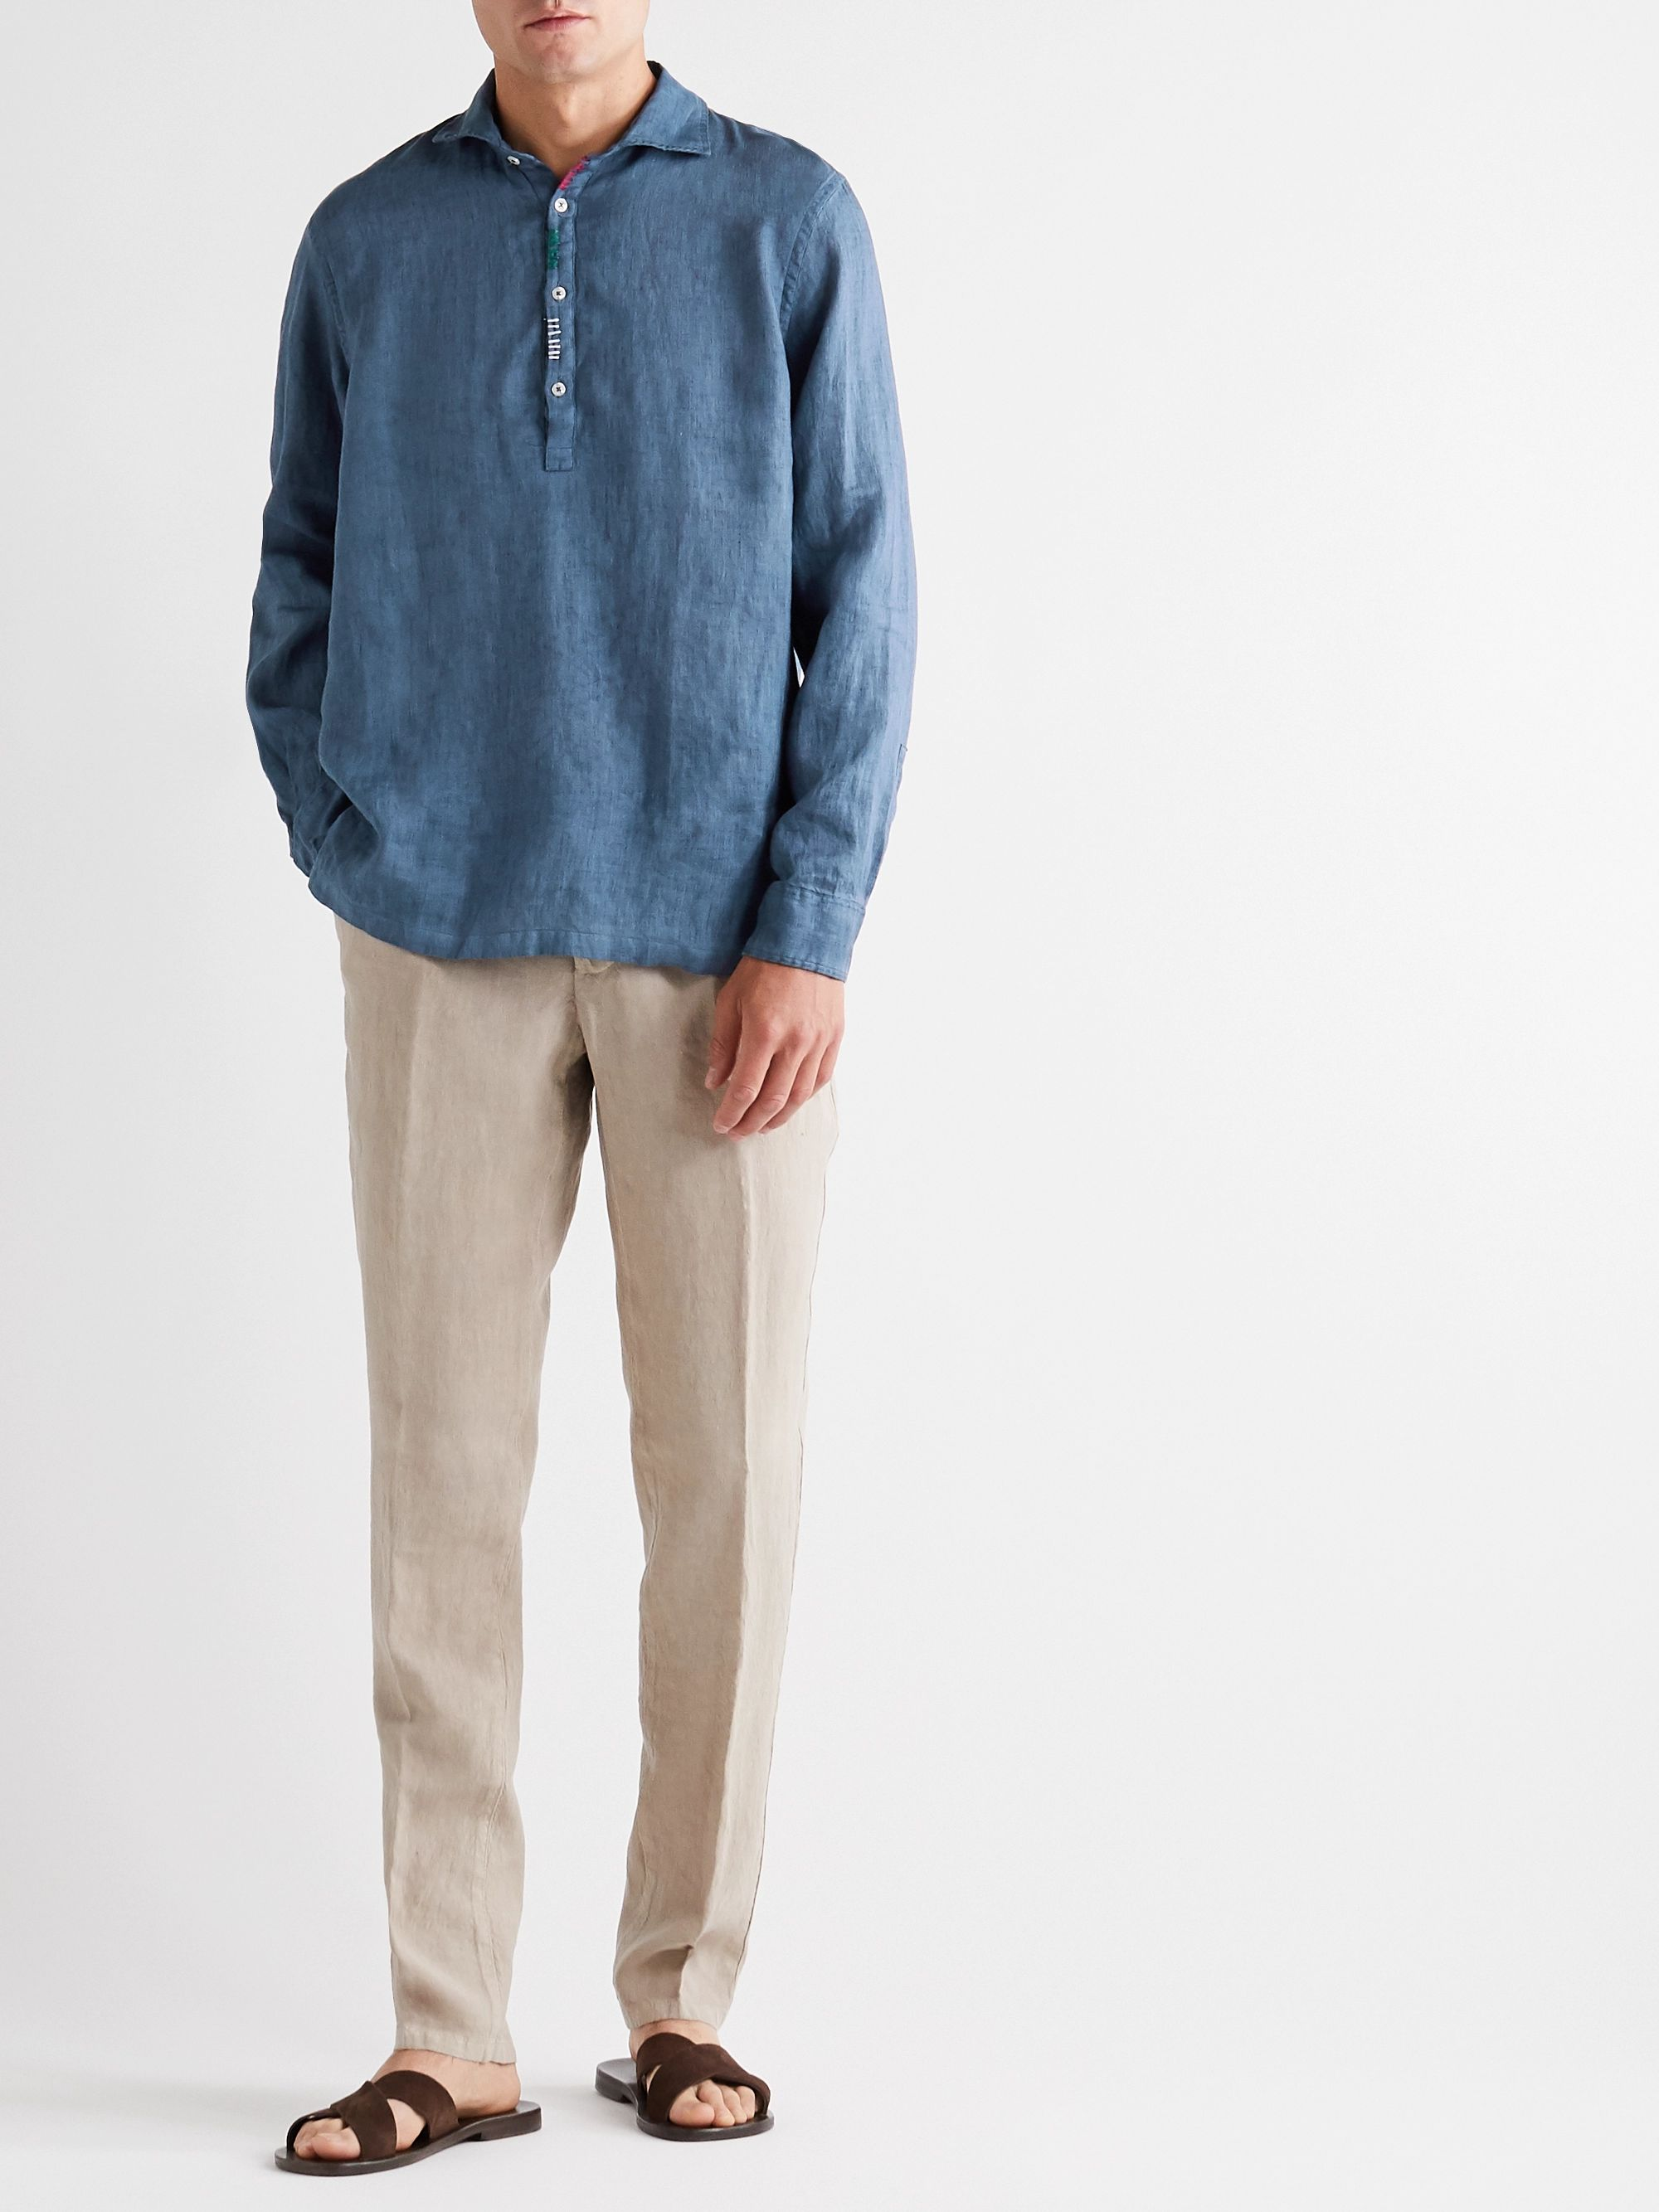 Altea Embroidered Linen Half-Placket Shirt